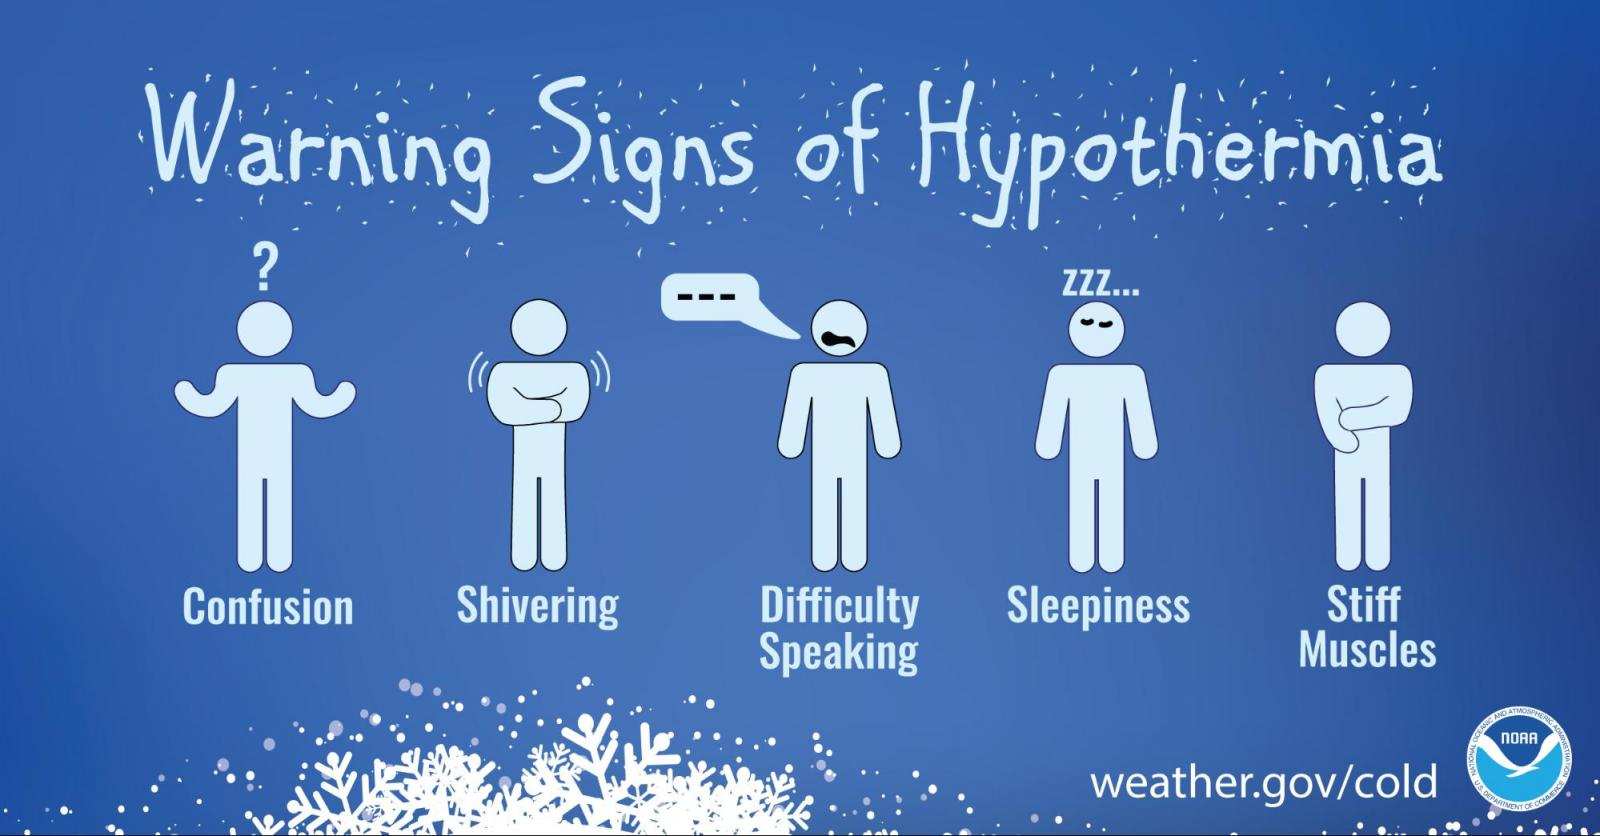 signs of hypothermia - confusion, shivering, difficulty speaking, sleepiness, stiff muscles